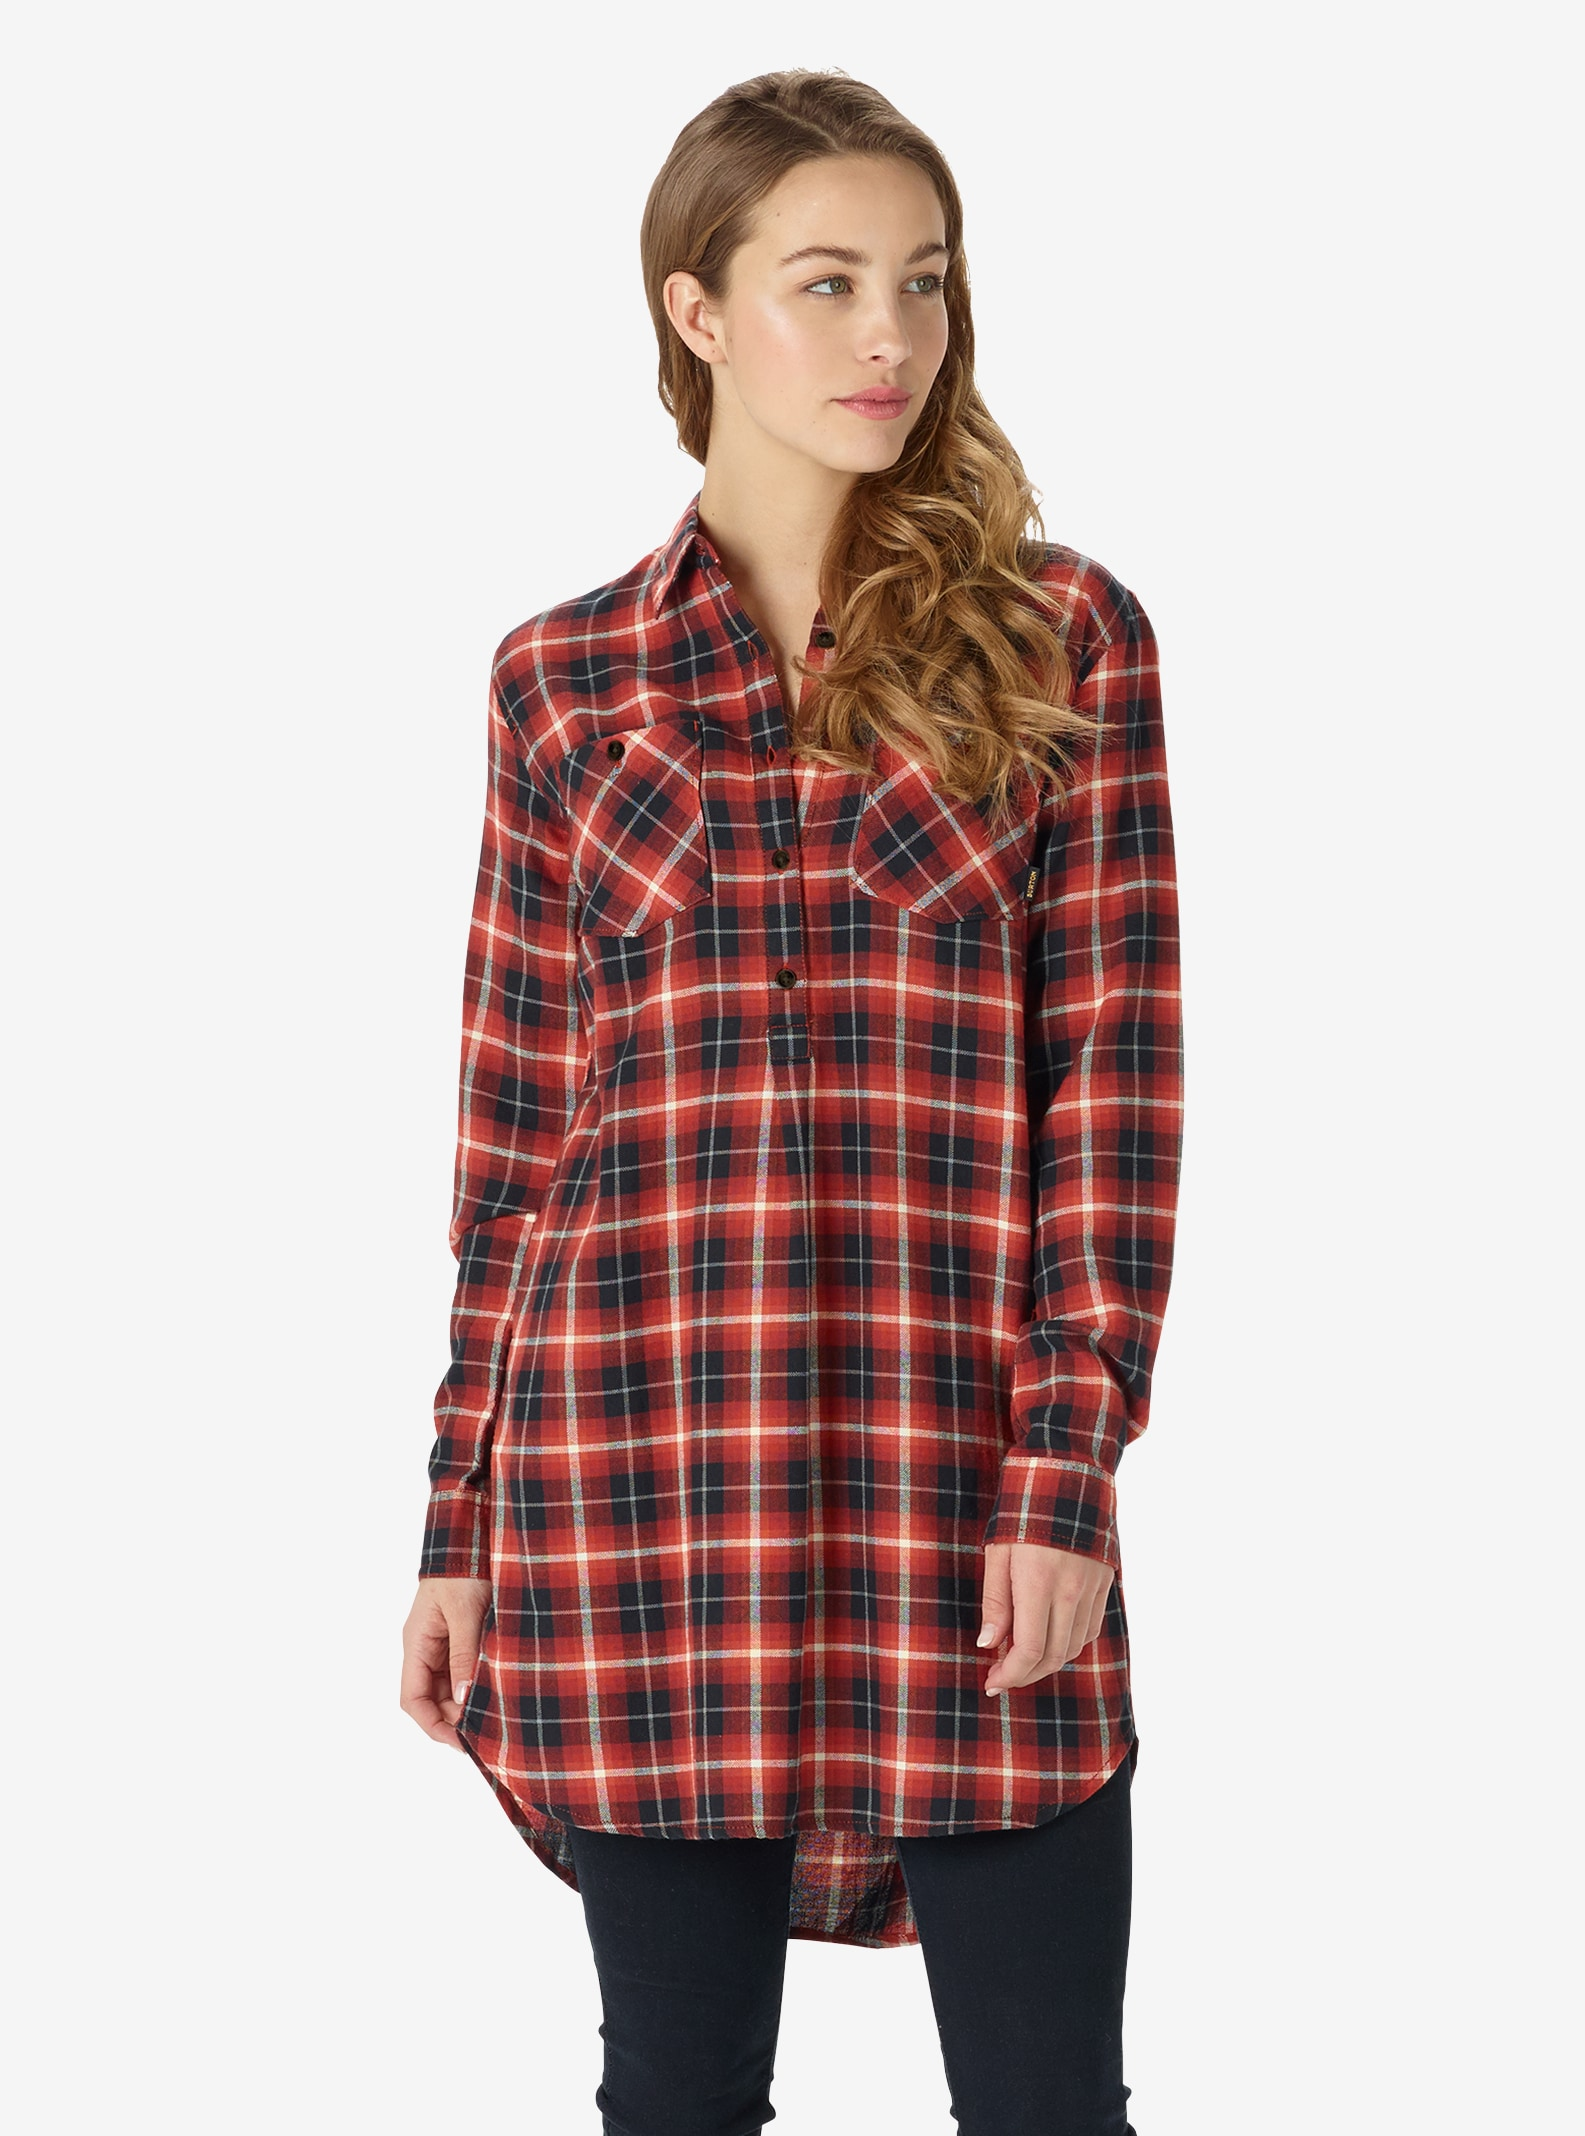 Women's Burton Grace Flannel Tunic shown in Bitters Haze Plaid